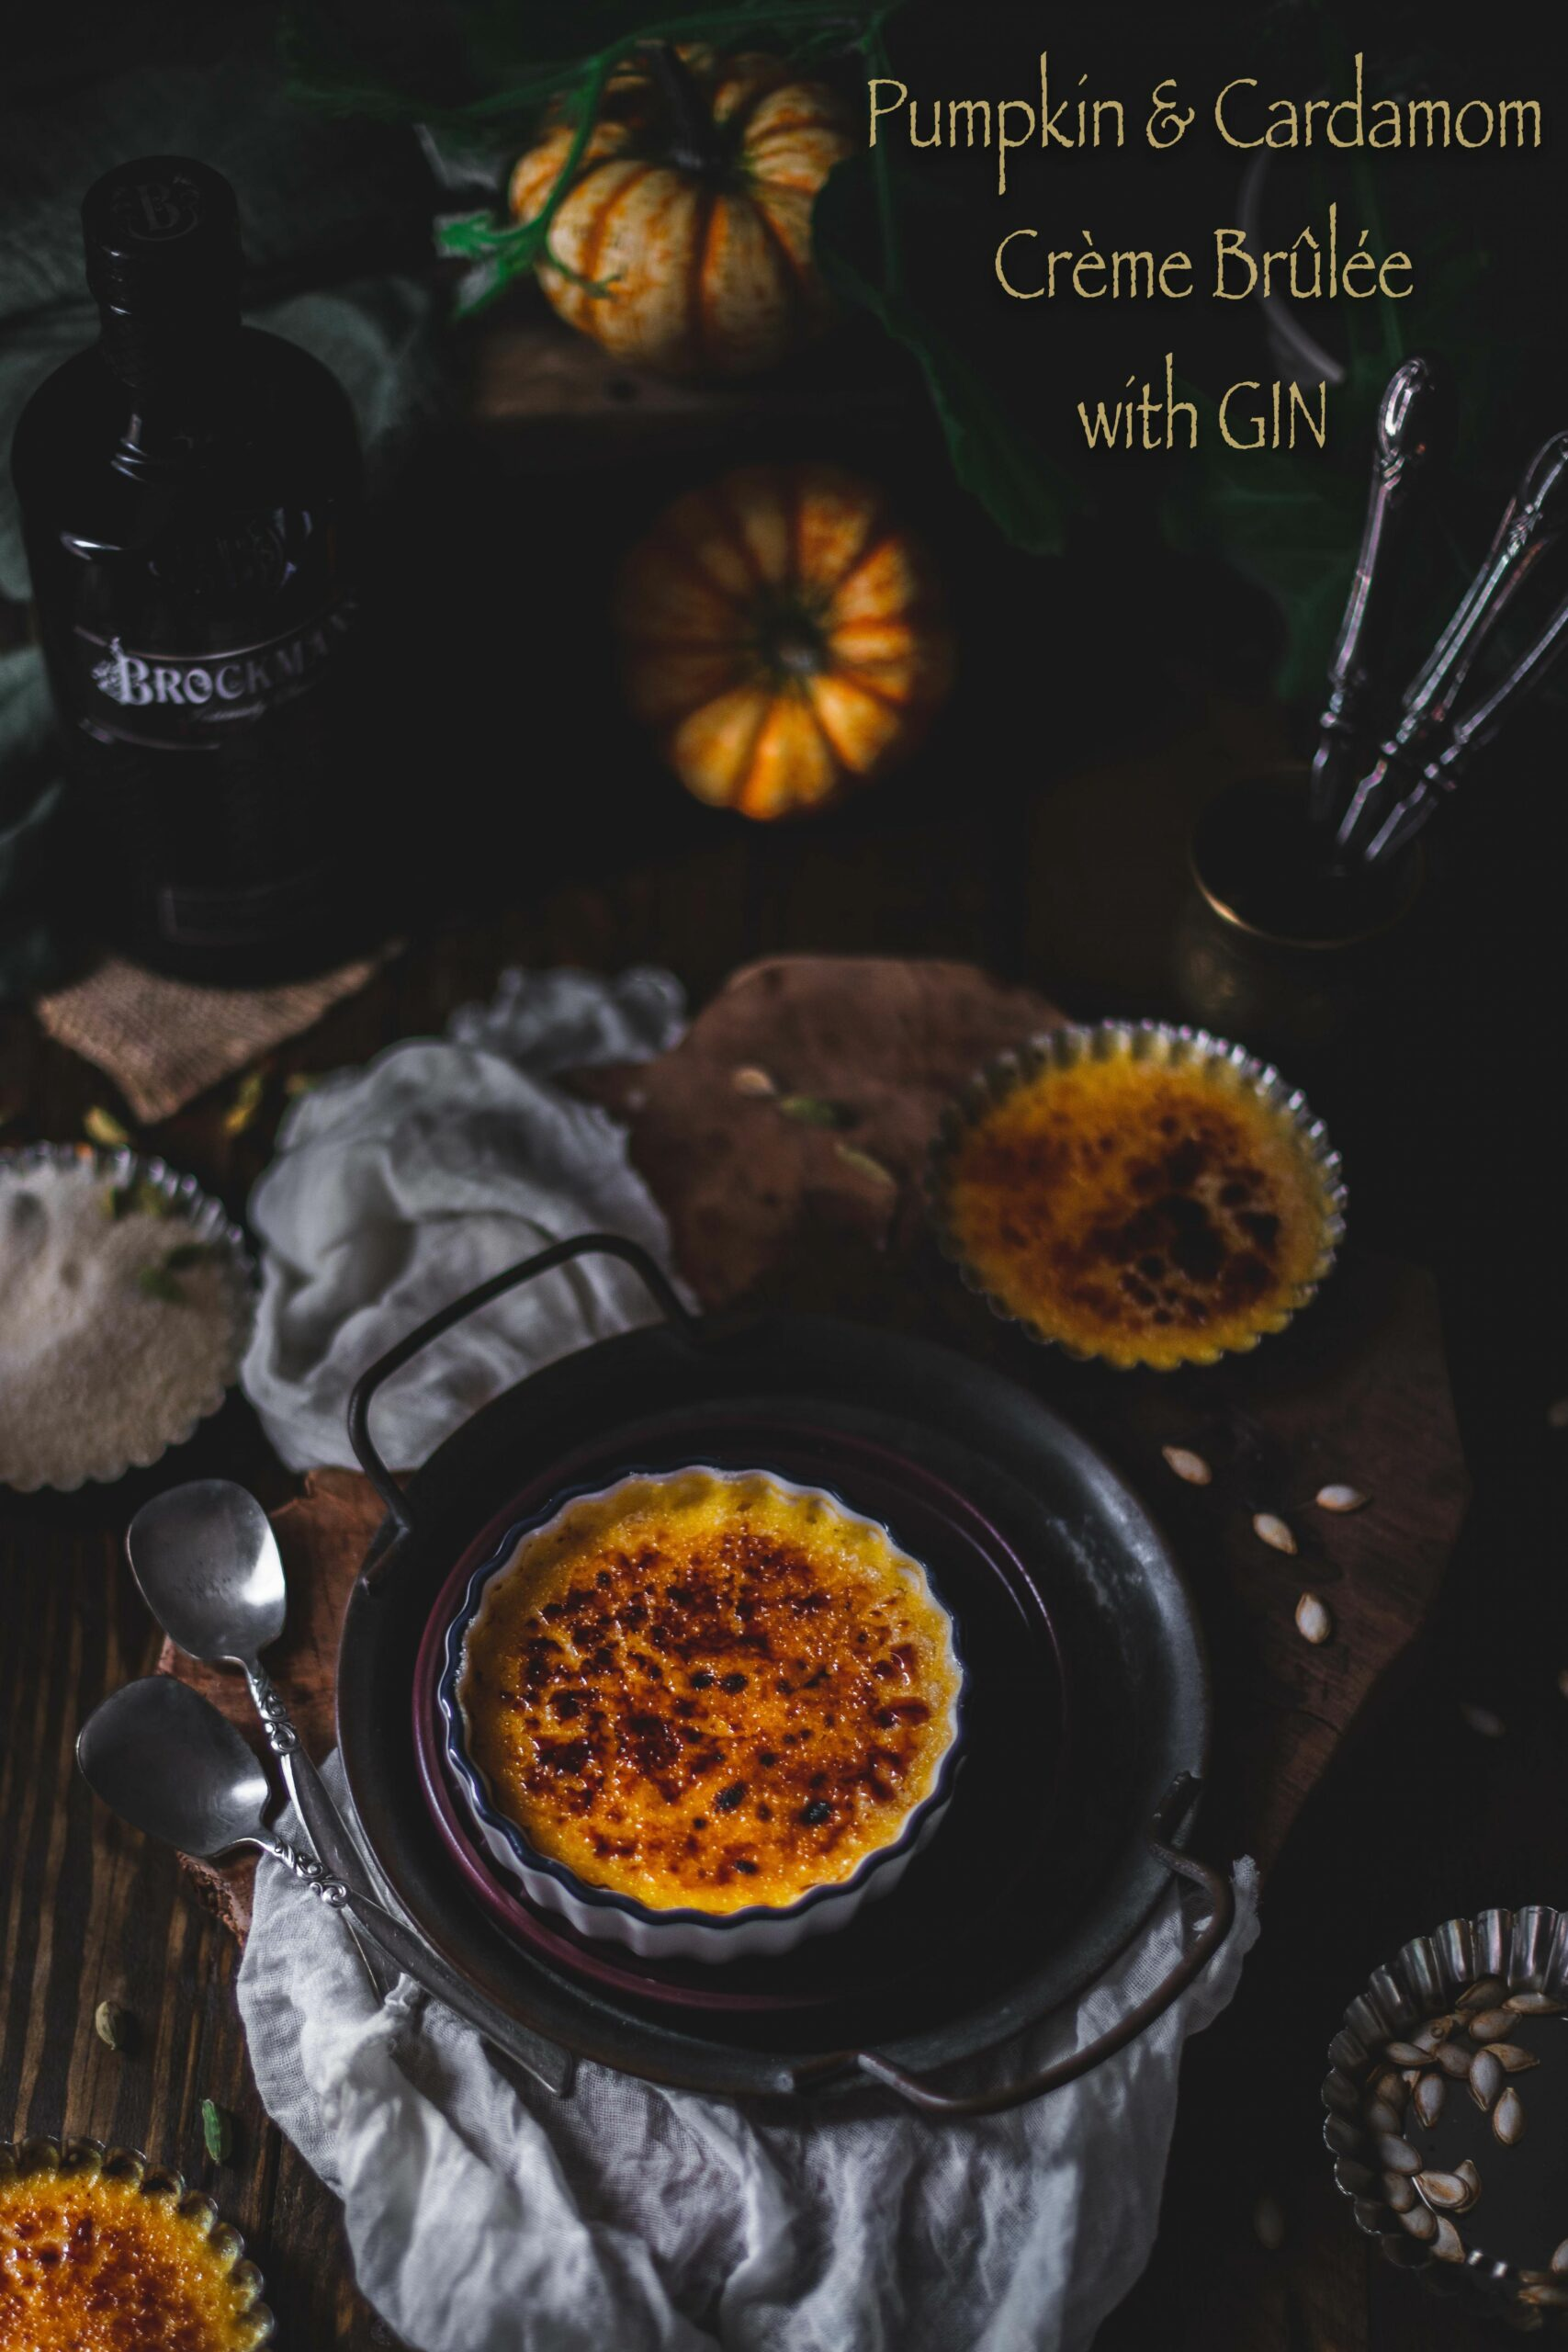 Pumpkin and Cardamom Crème Brûlée with Gin - Gastronomic BONG